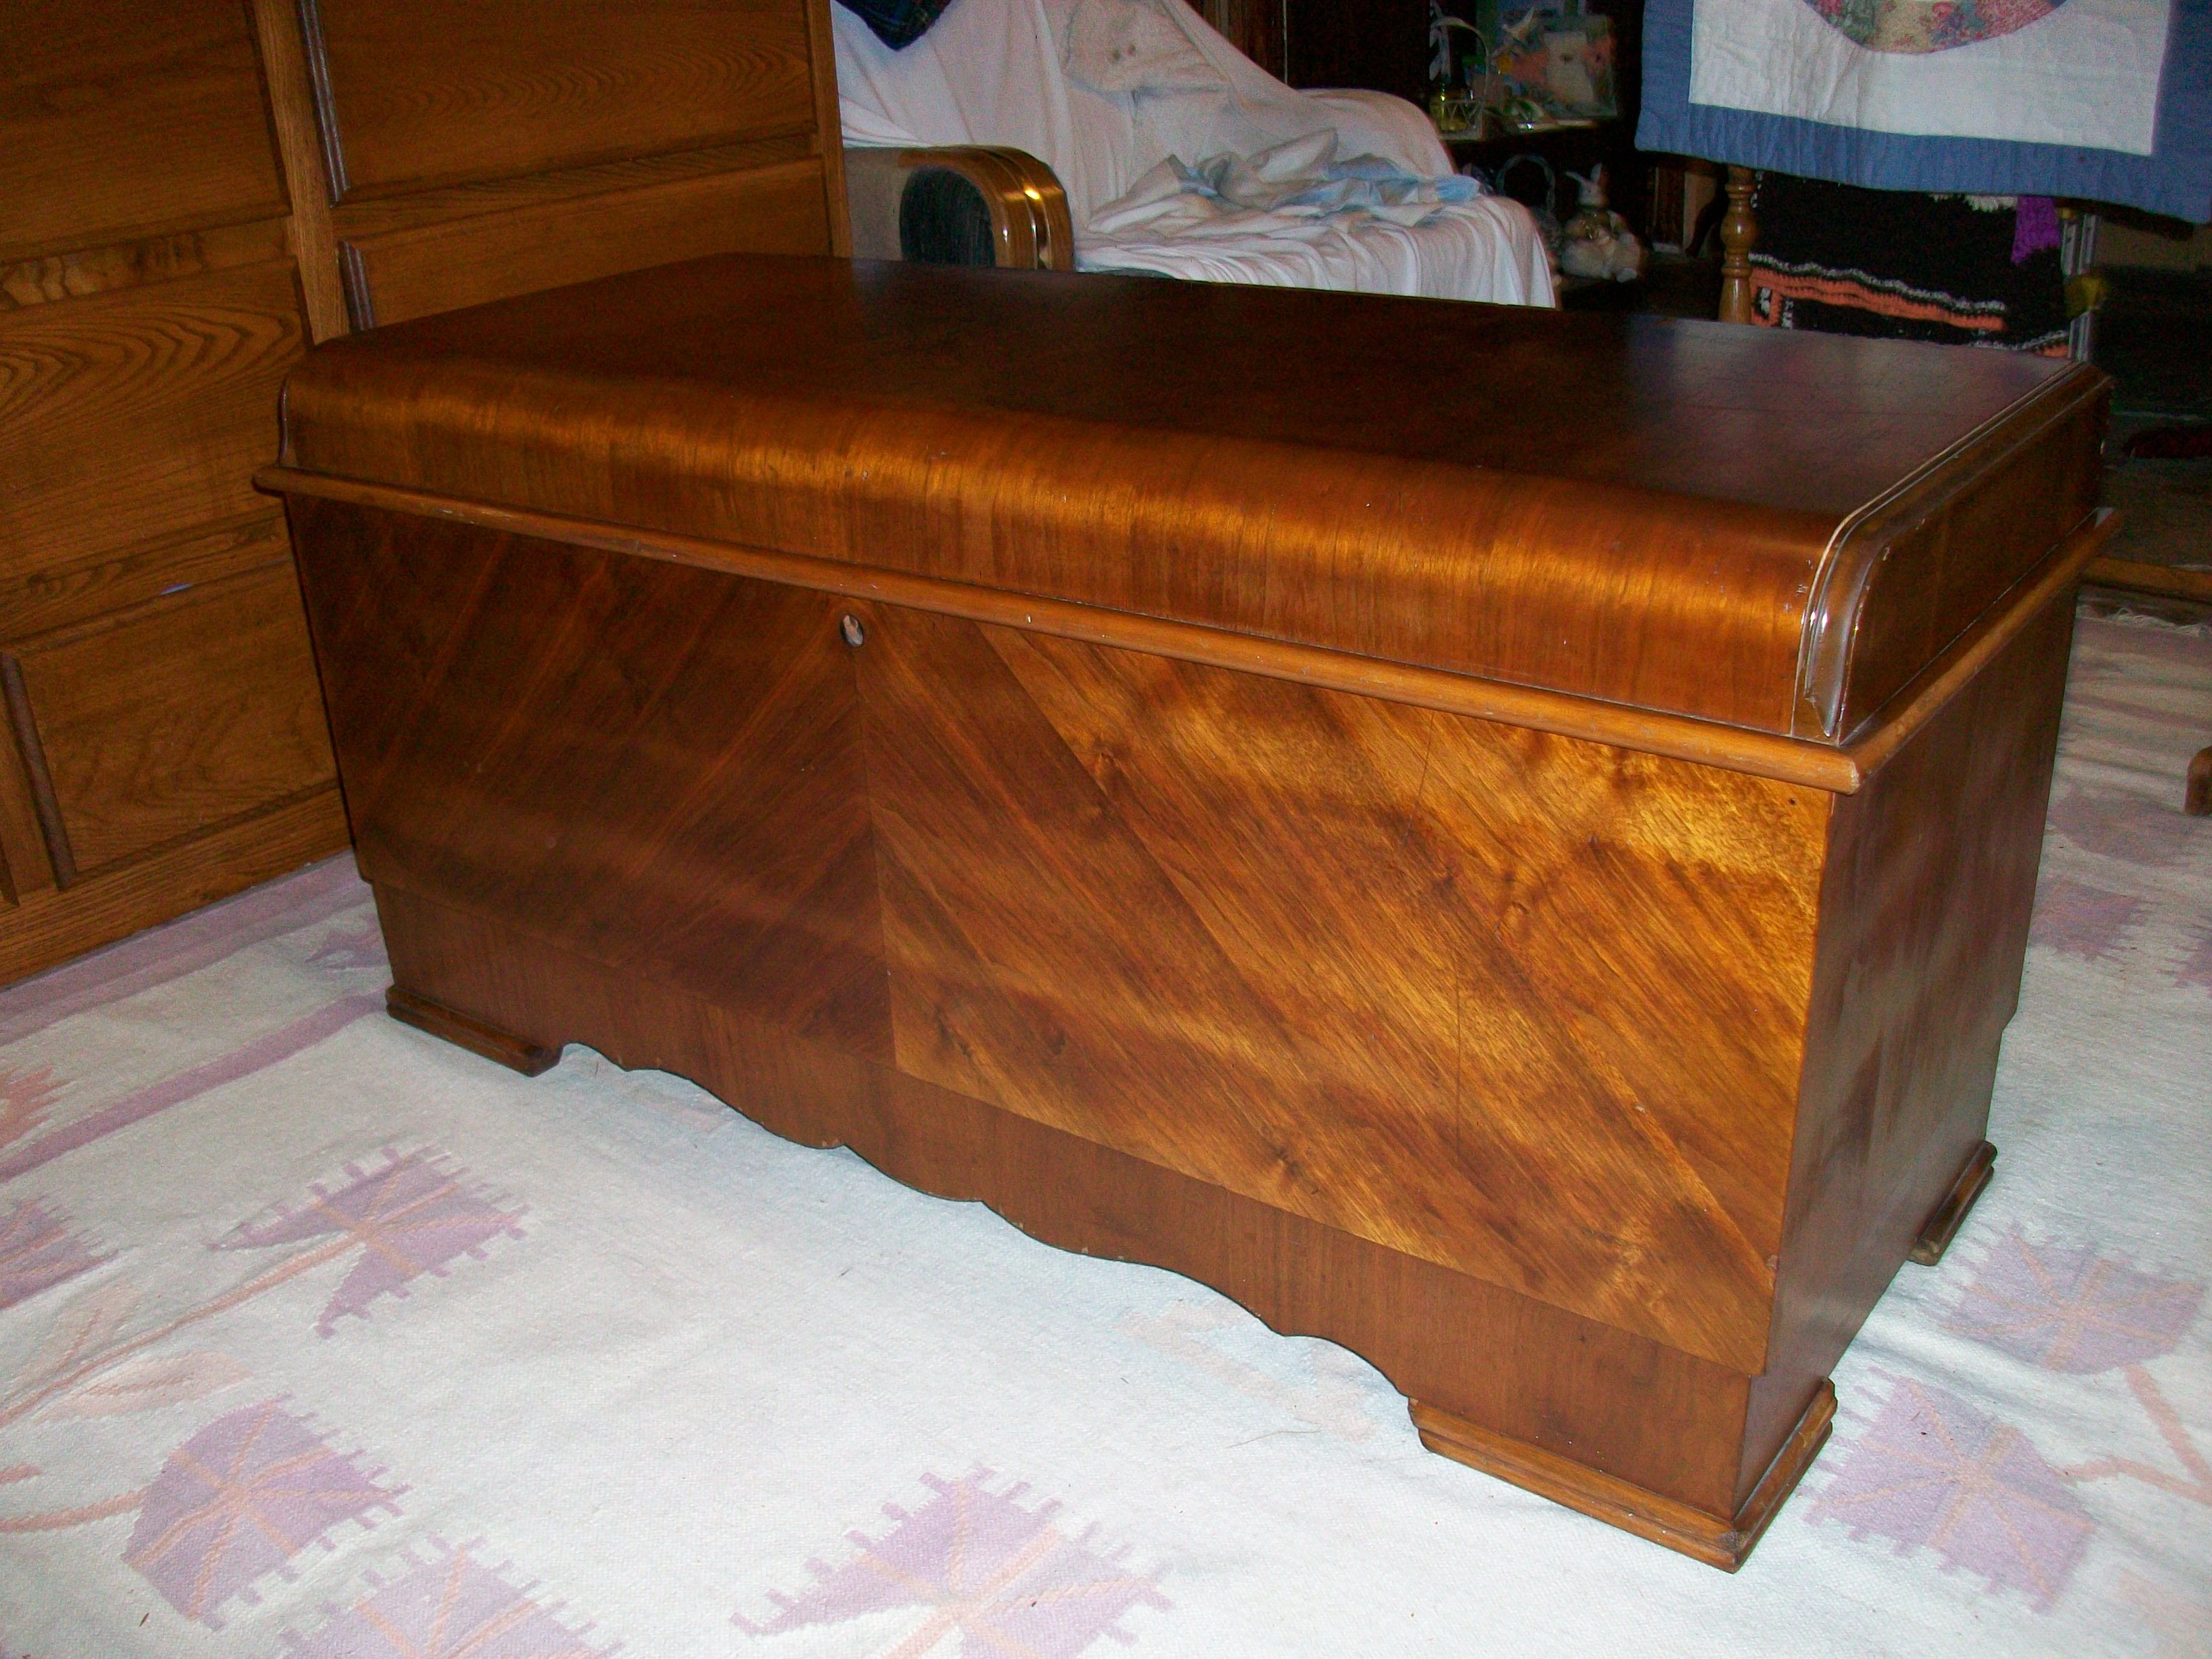 Lane Waterfall Cedar Chest I Have One Exactly Like This That Was My Mom Dad S From The 40 S Waterfall Furniture Cedar Chest Vintage Design Ideas